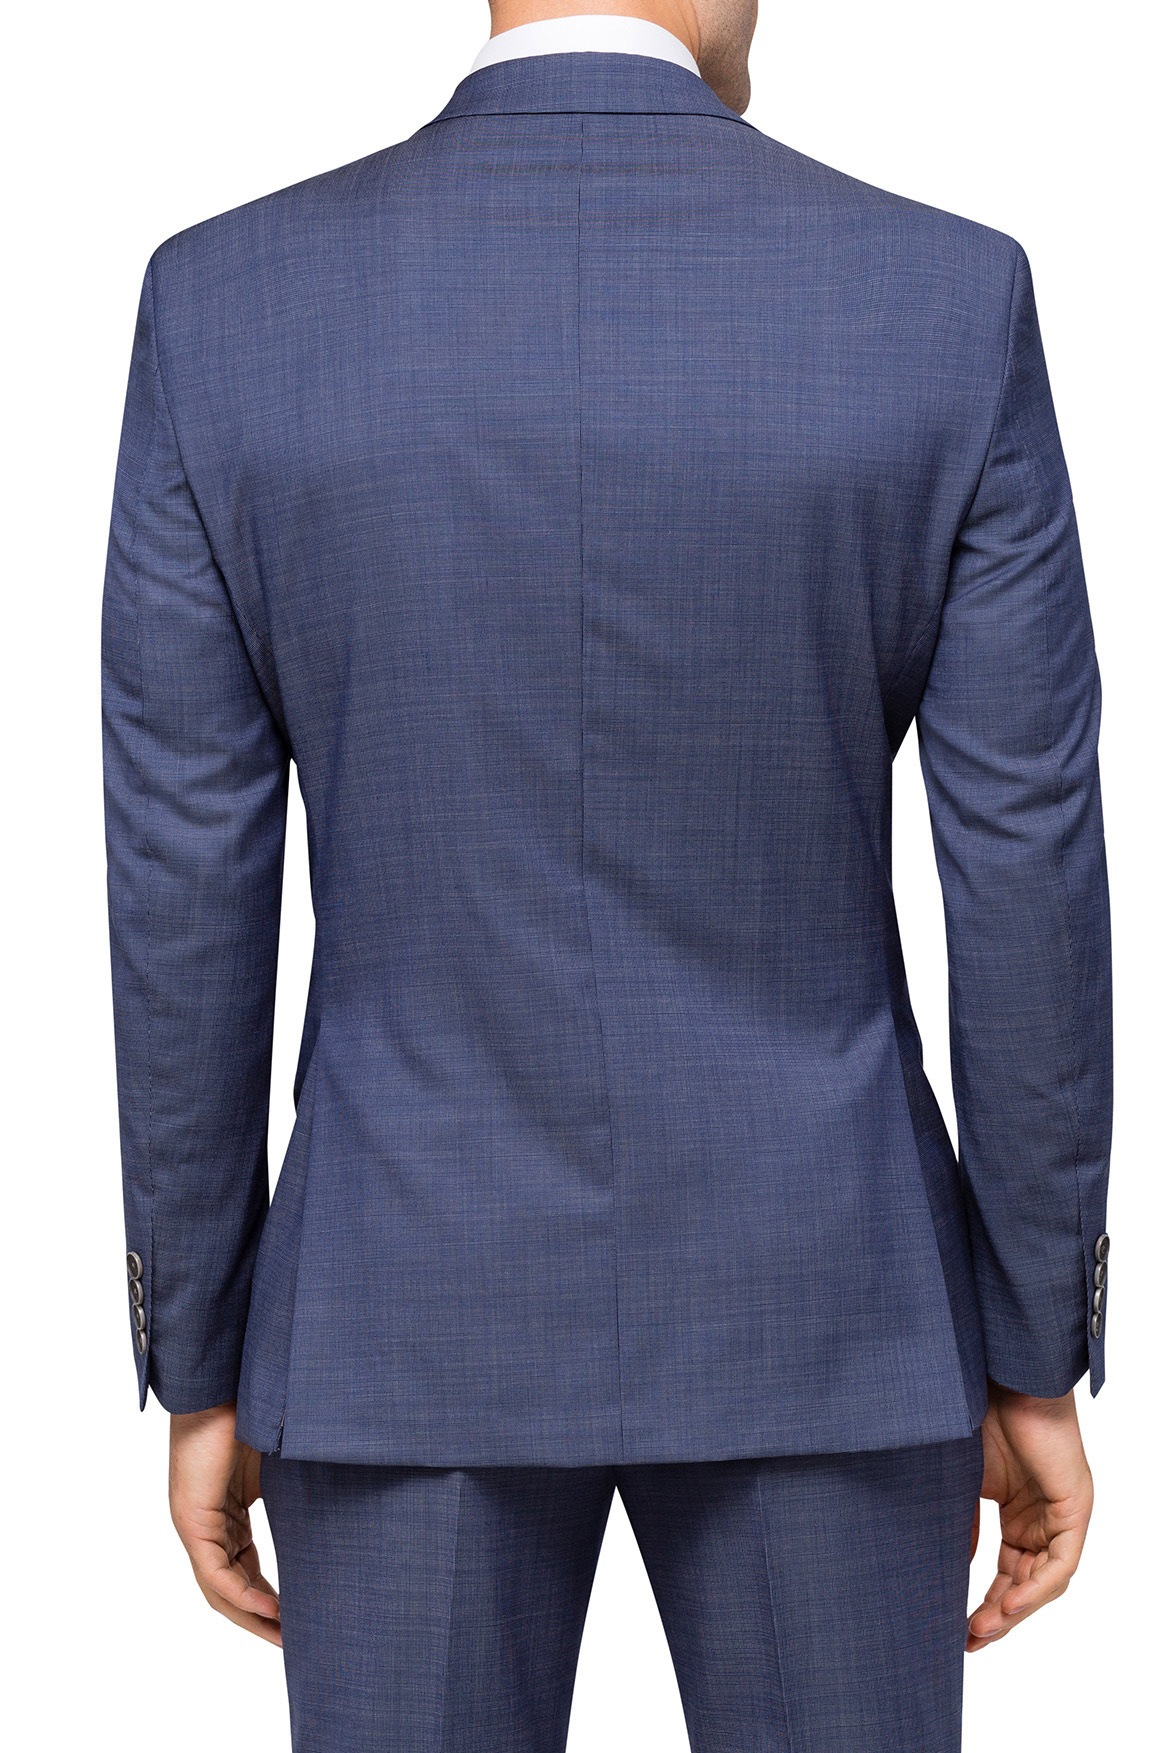 Calvin Klein - Suit Jacket